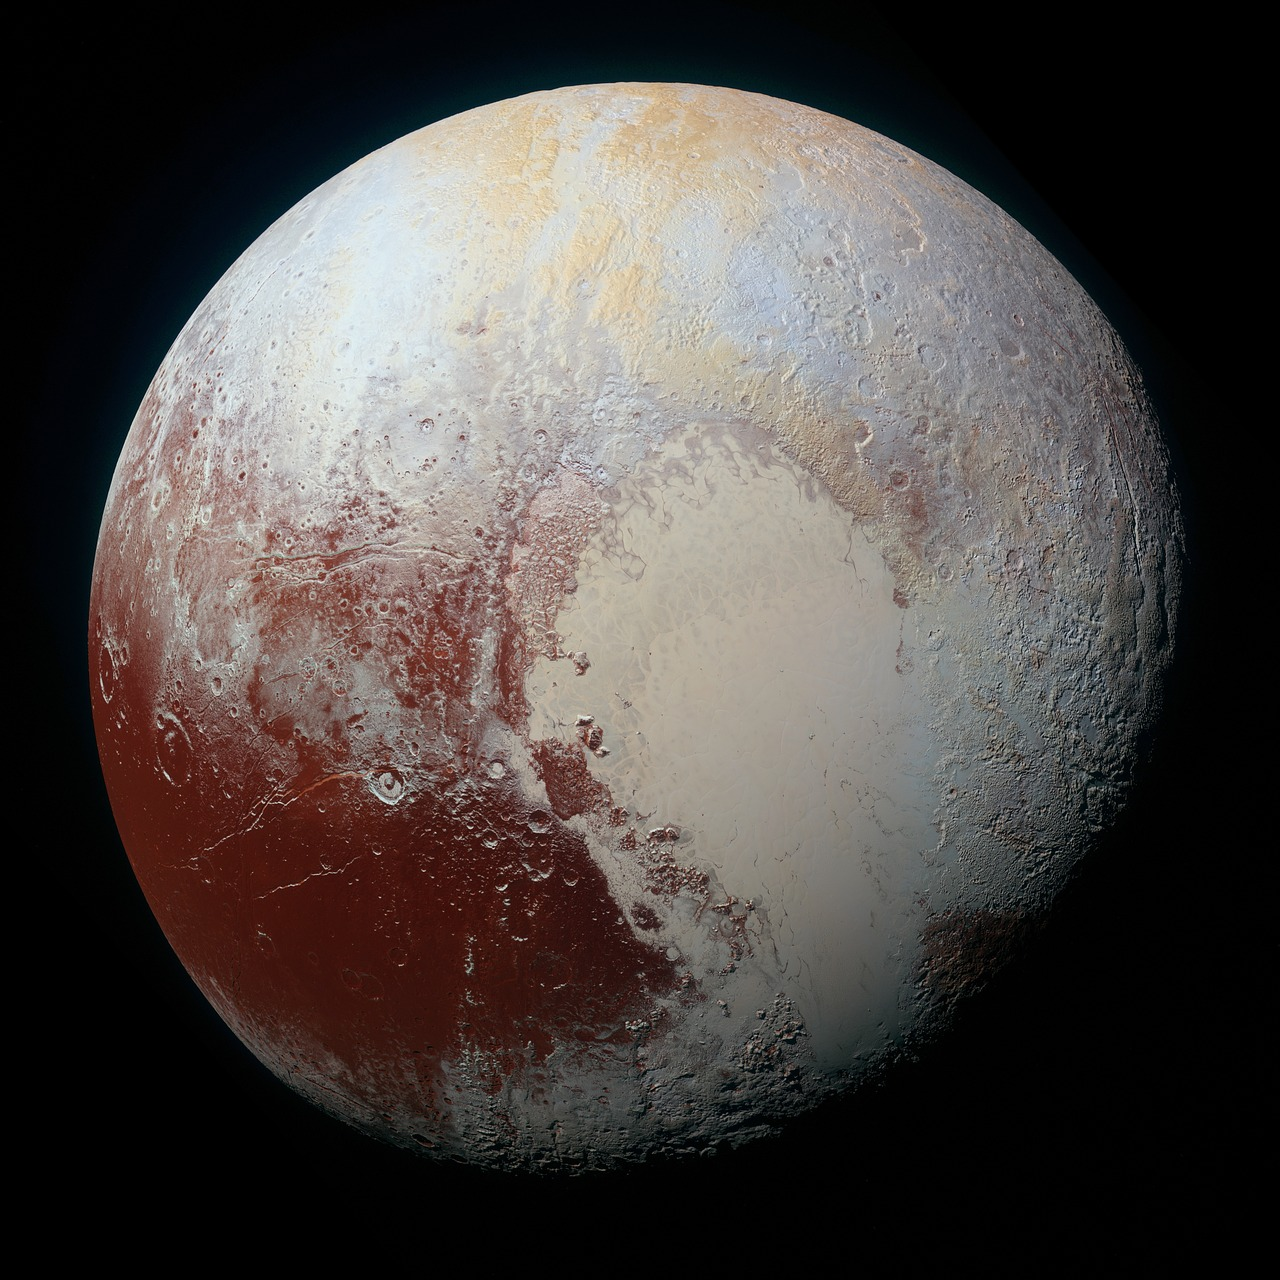 An image of Pluto, captured by NASA's New Horizons spacecraft during the 2015 fly-by mission.